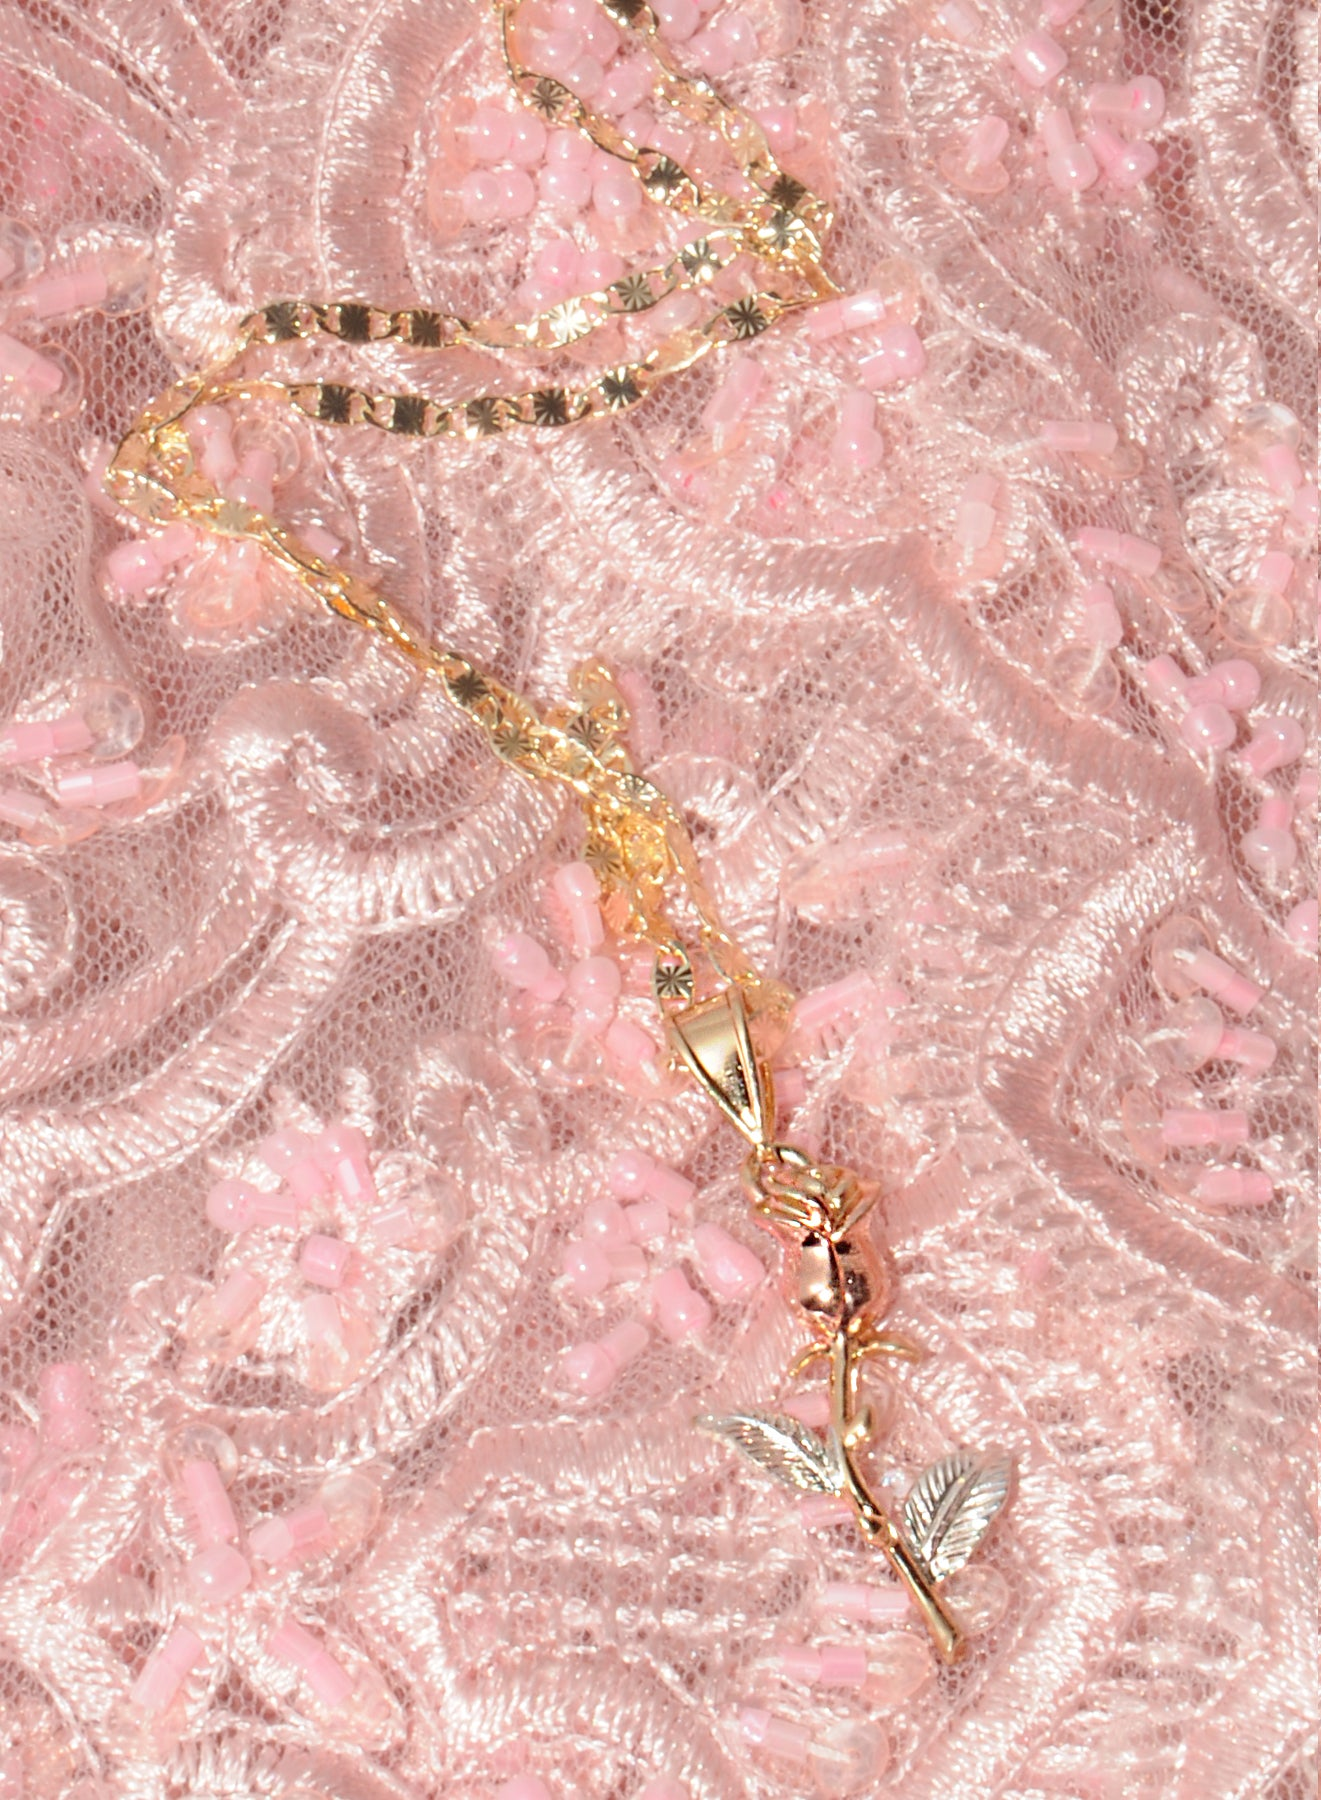 Rose Thorn Romance Necklace